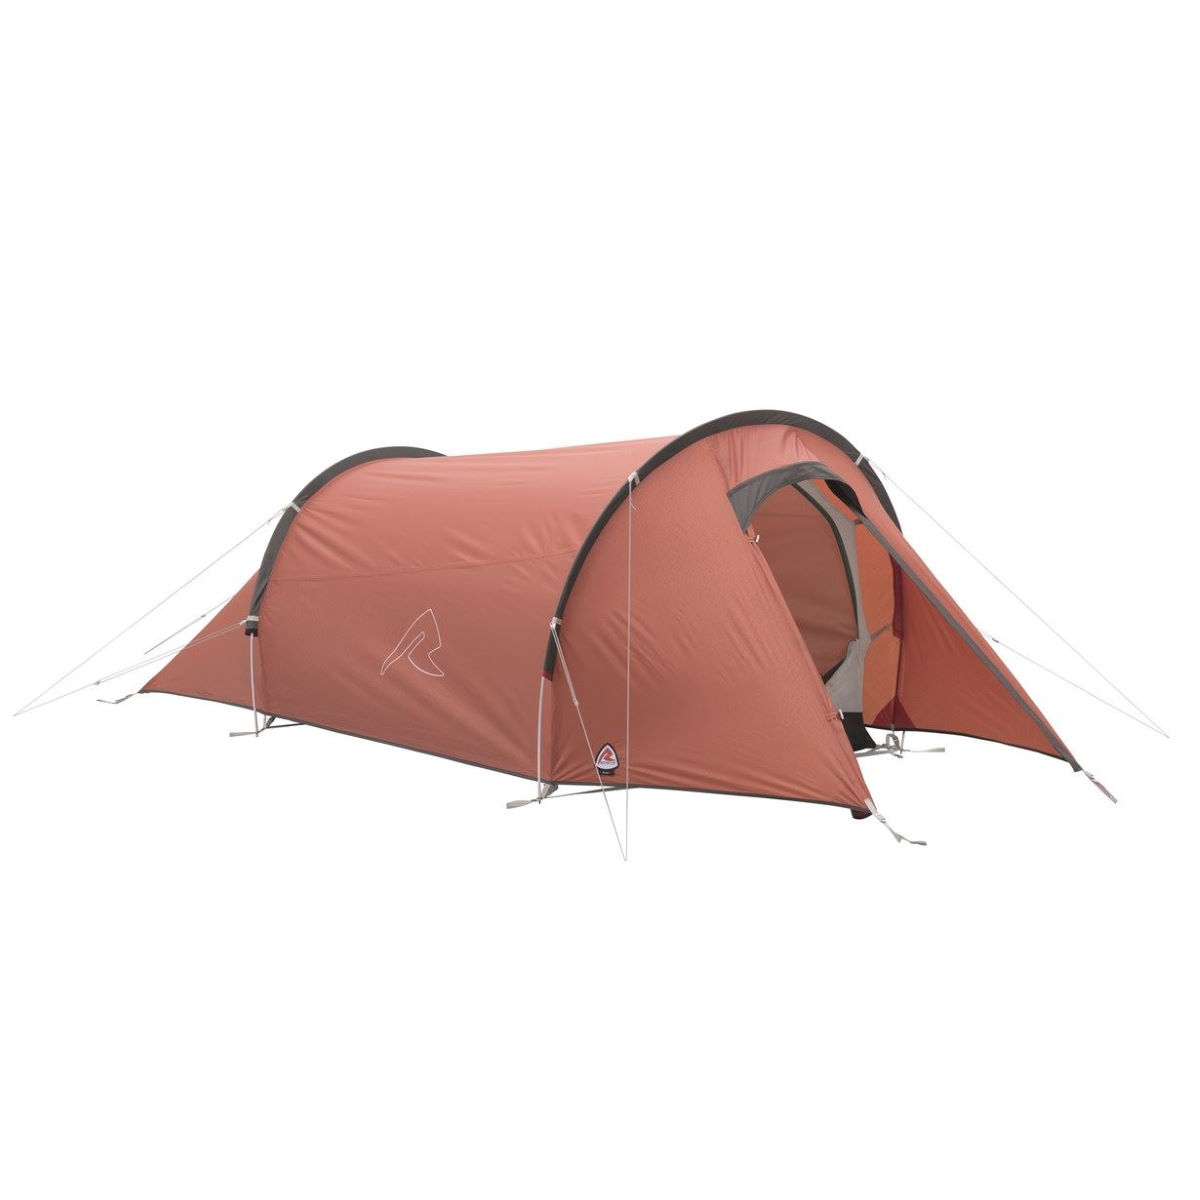 Robens Robens Arch 2Person Tent   Tents